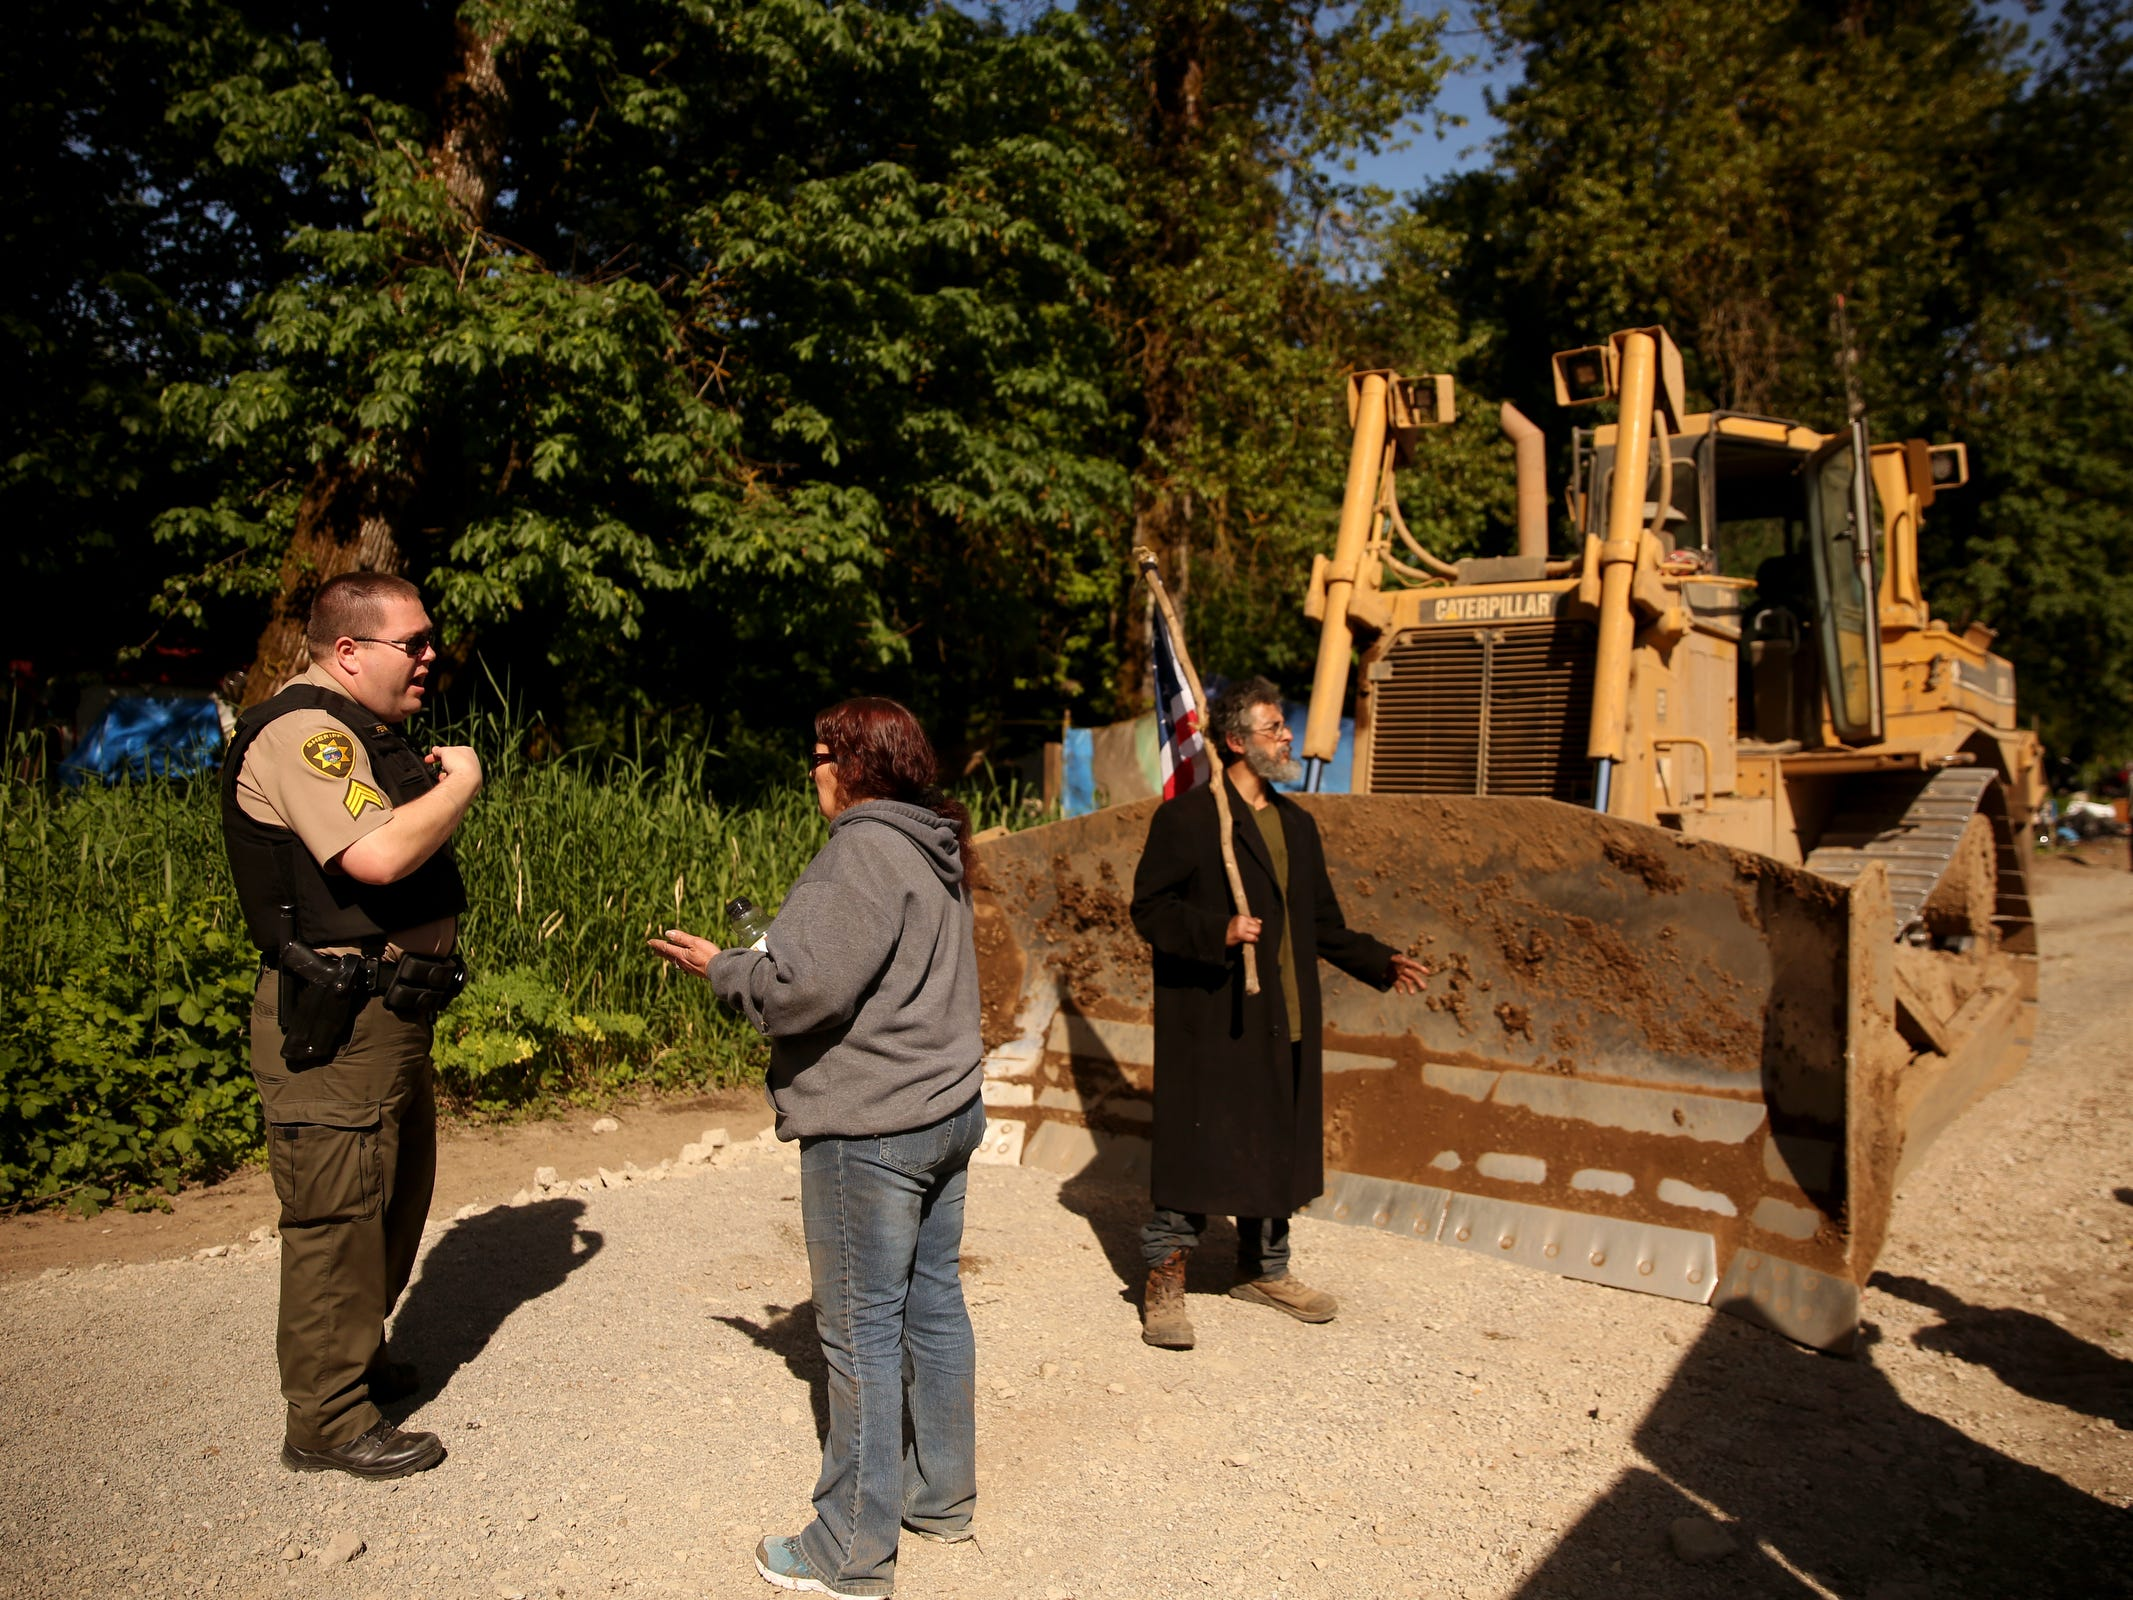 Sgt. Todd Fenk, with the Polk County Sheriff's Office, talks with Joan Tomlinson after several people stood in front of a bulldozer that came into a privately-owned rock quarry with a homeless camp near Wallace Marine Park in West Salem on May 7, 2019. Signs were posted throughout the camp recently stating personal property must be removed or it will be taken by the landowner and its designated agent starting May 7. An eviction can't be enforced until a court approves it.